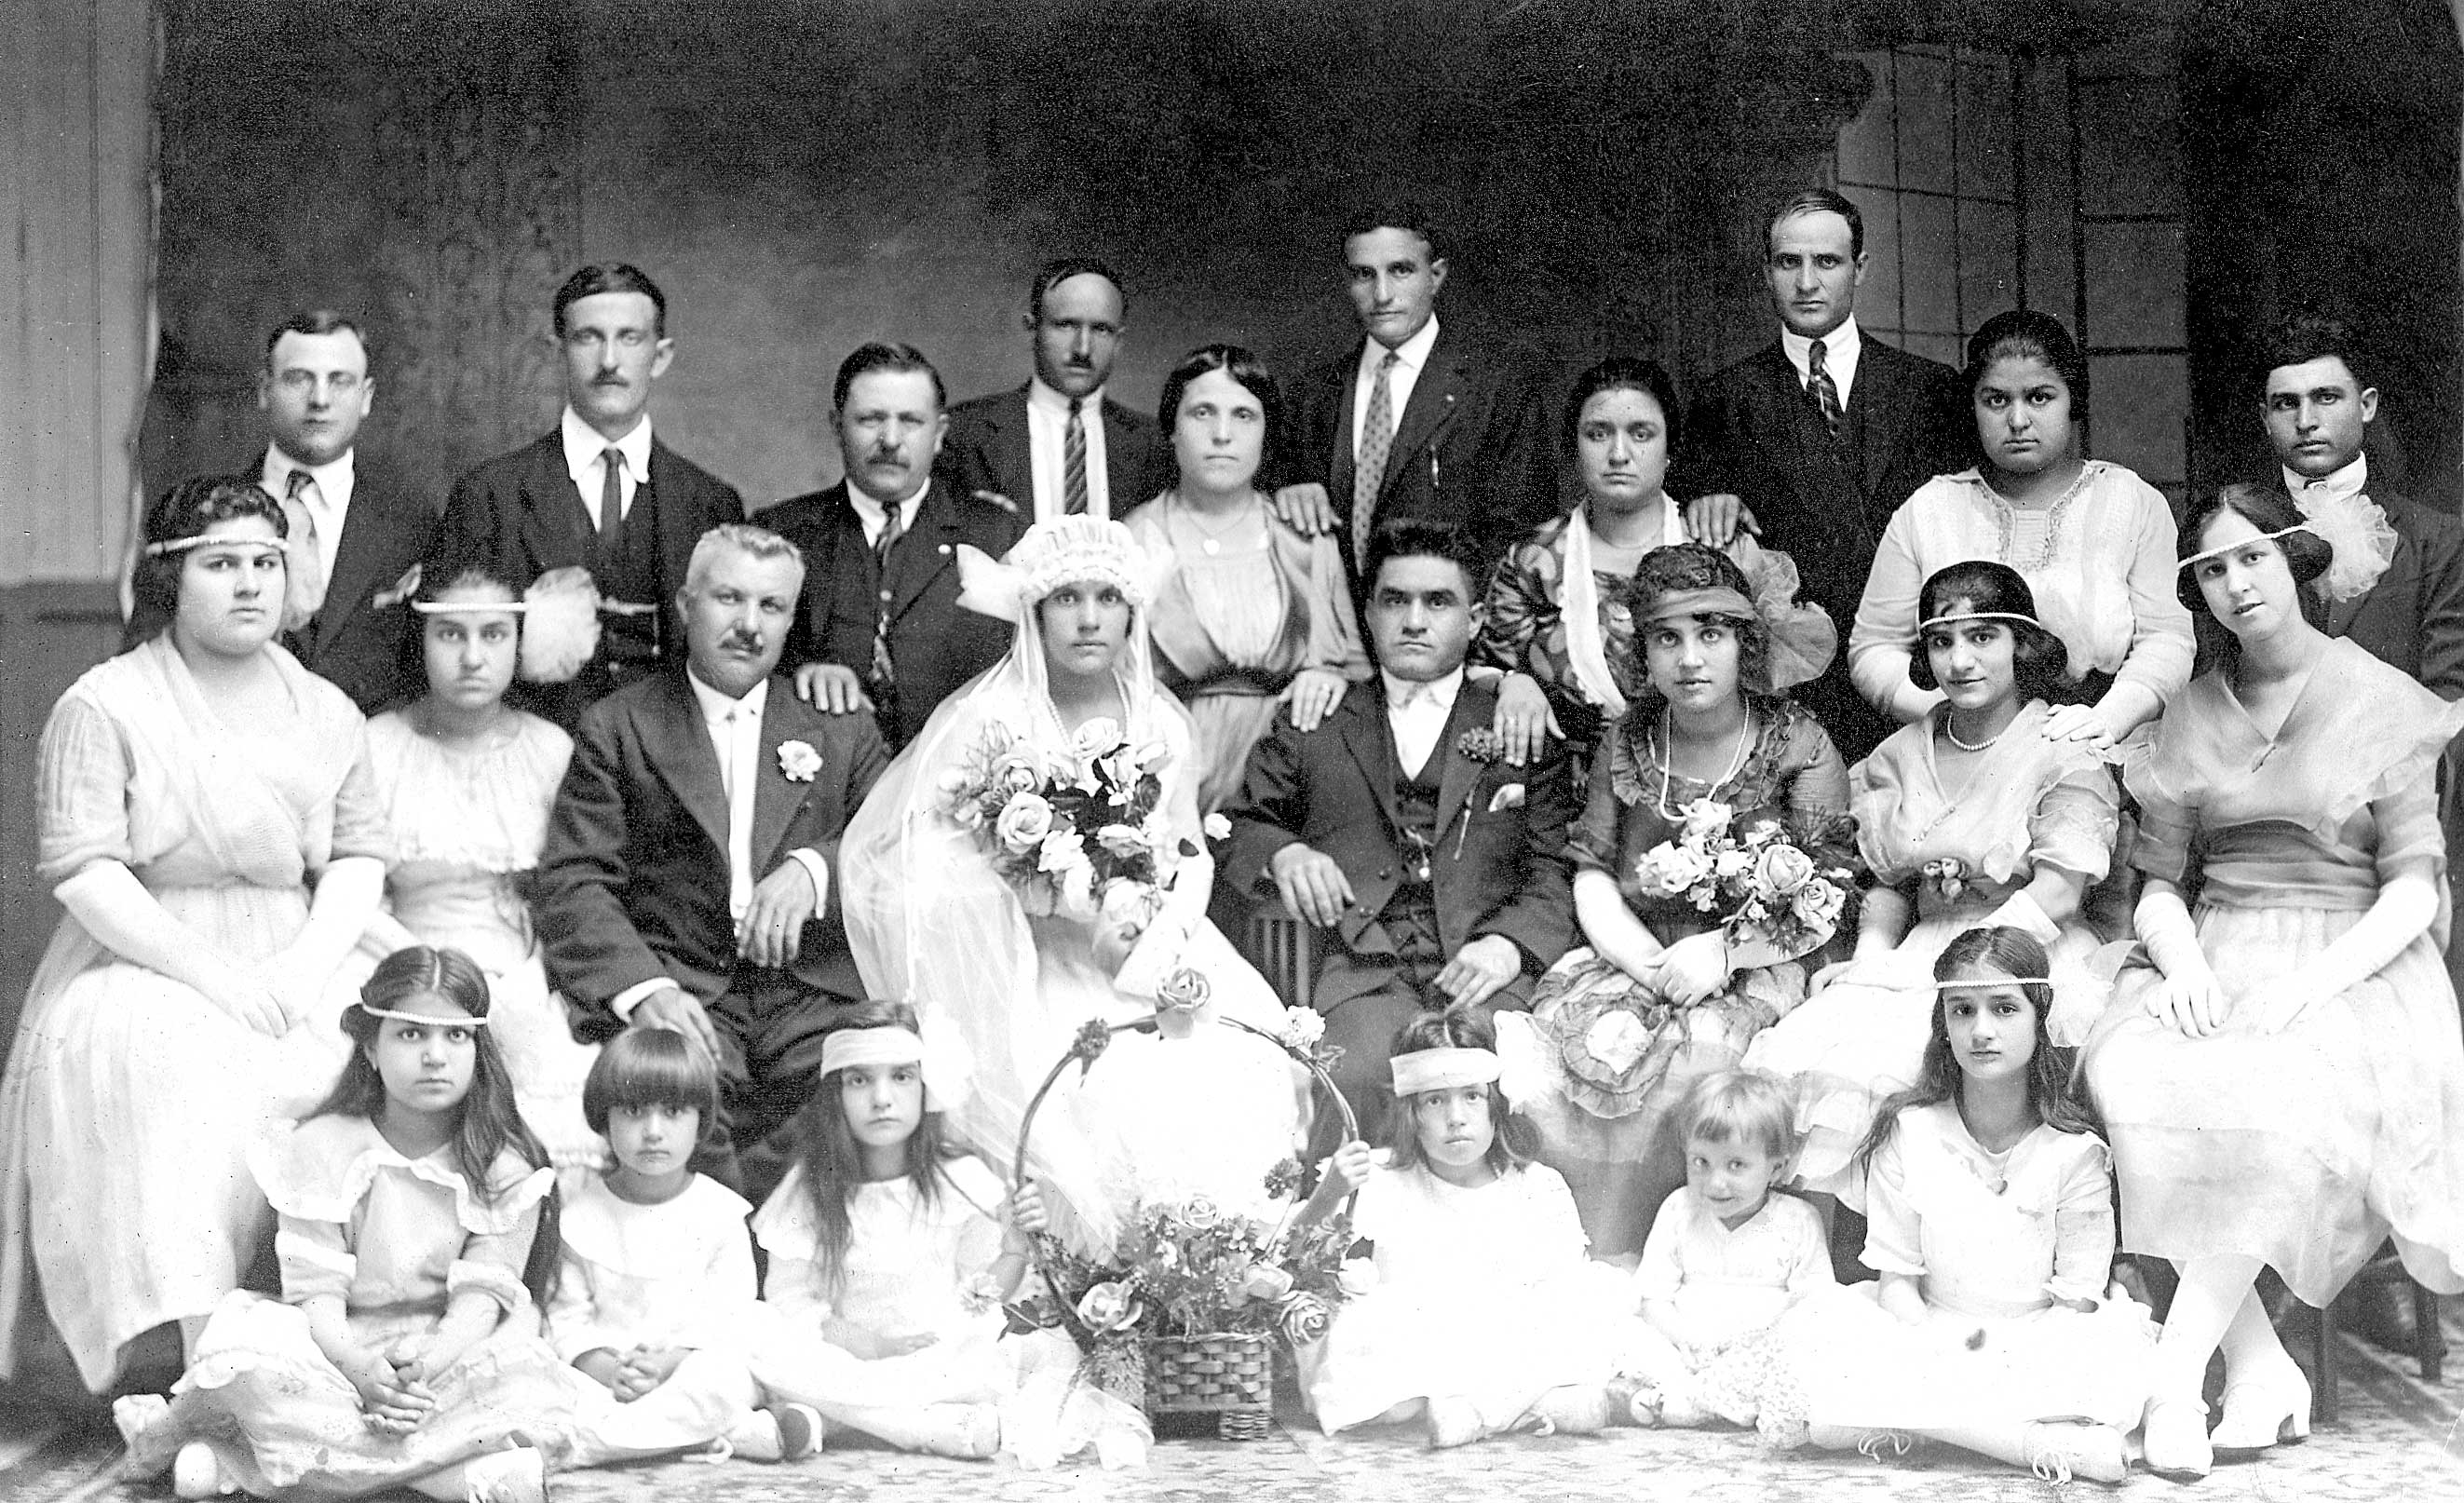 Marriage of Francesco Orlando & Giorgina delCalzo (1921)